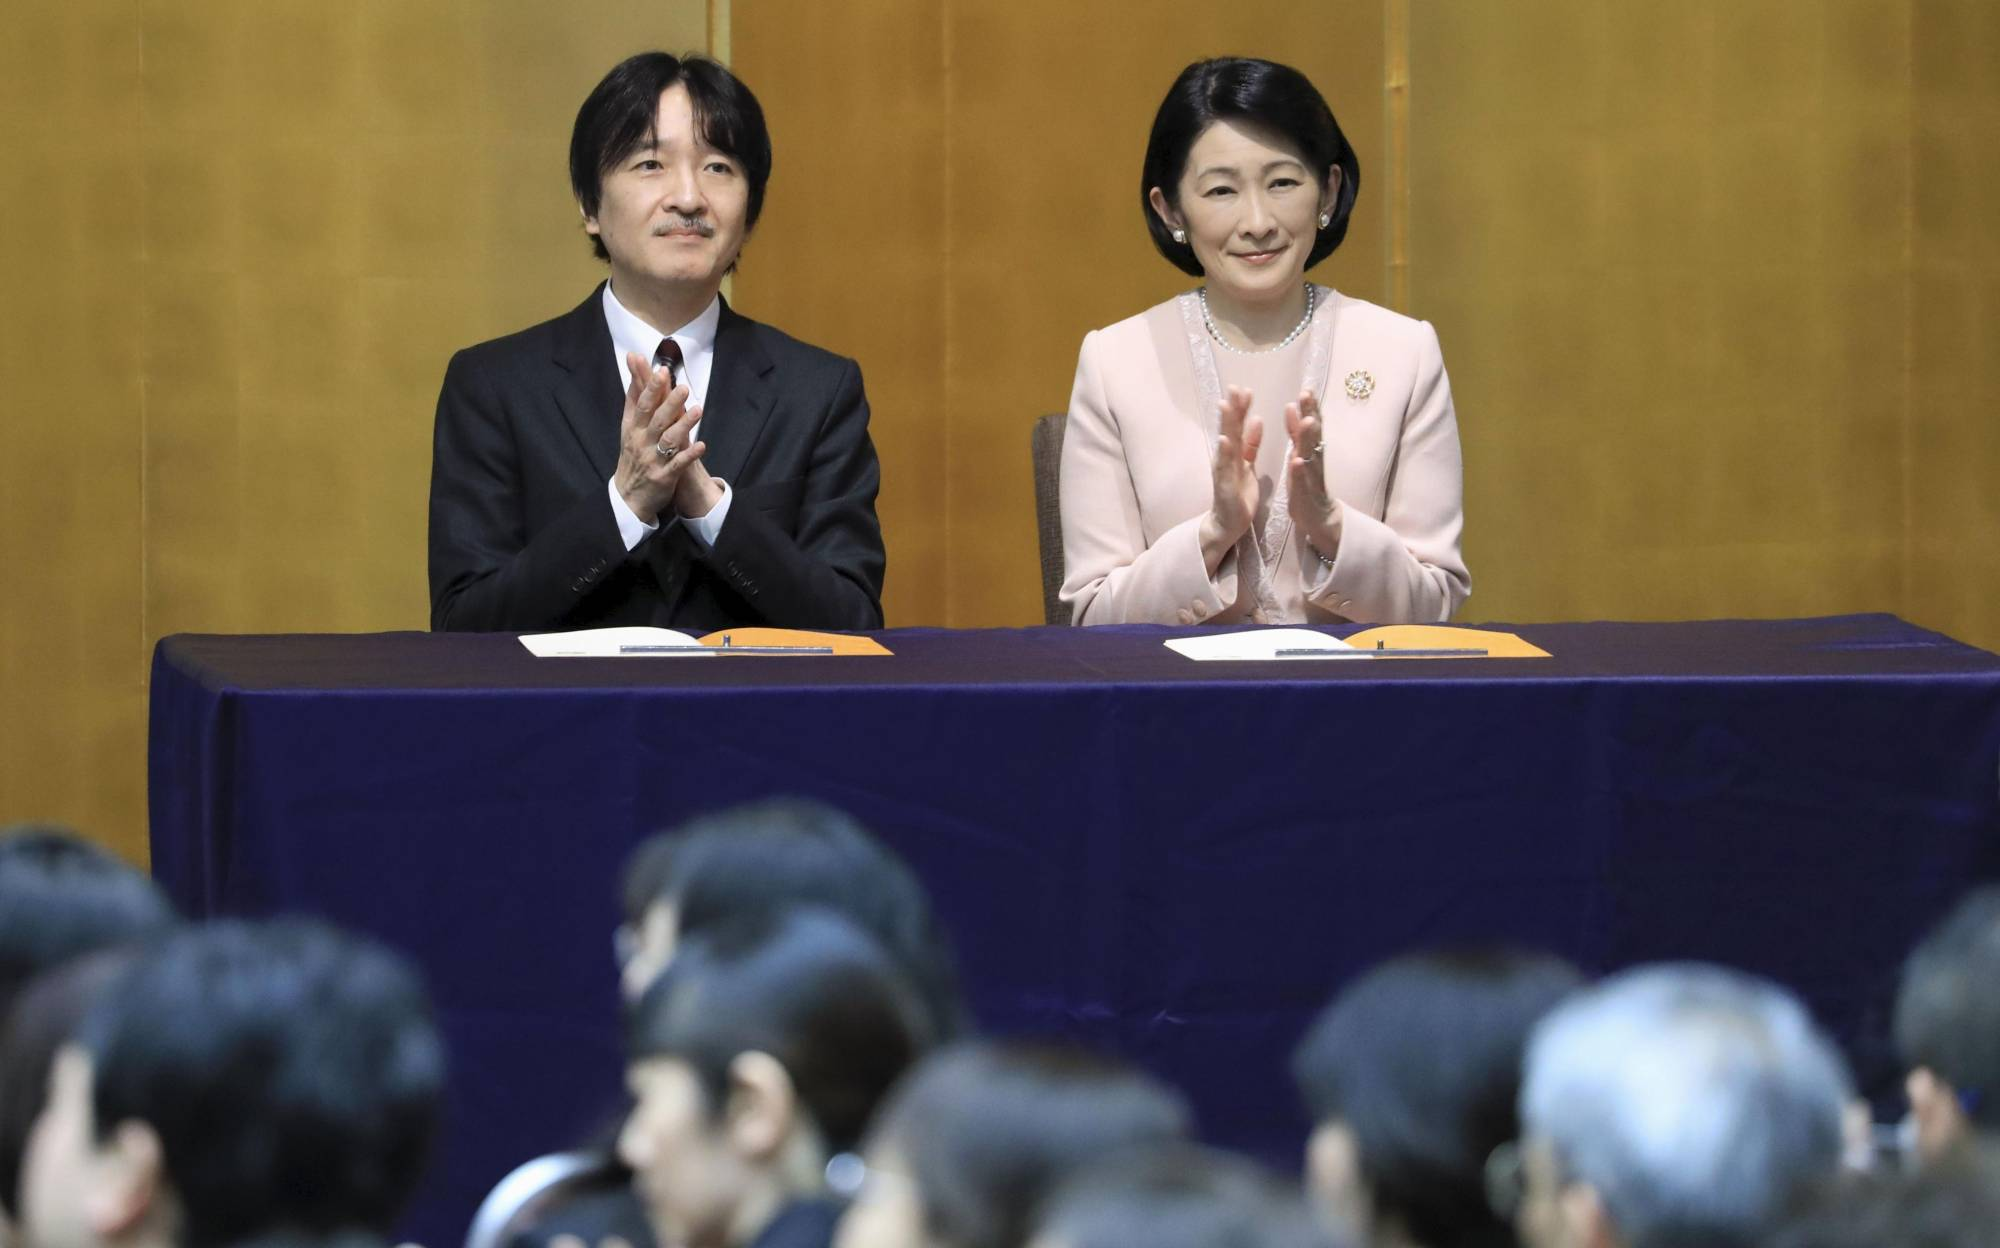 Crown Prince Akishino and Crown Princess Kiko attend the award ceremony for a book report contest for young people in Tokyo on Feb. 7.   POOL / VIA KYODO